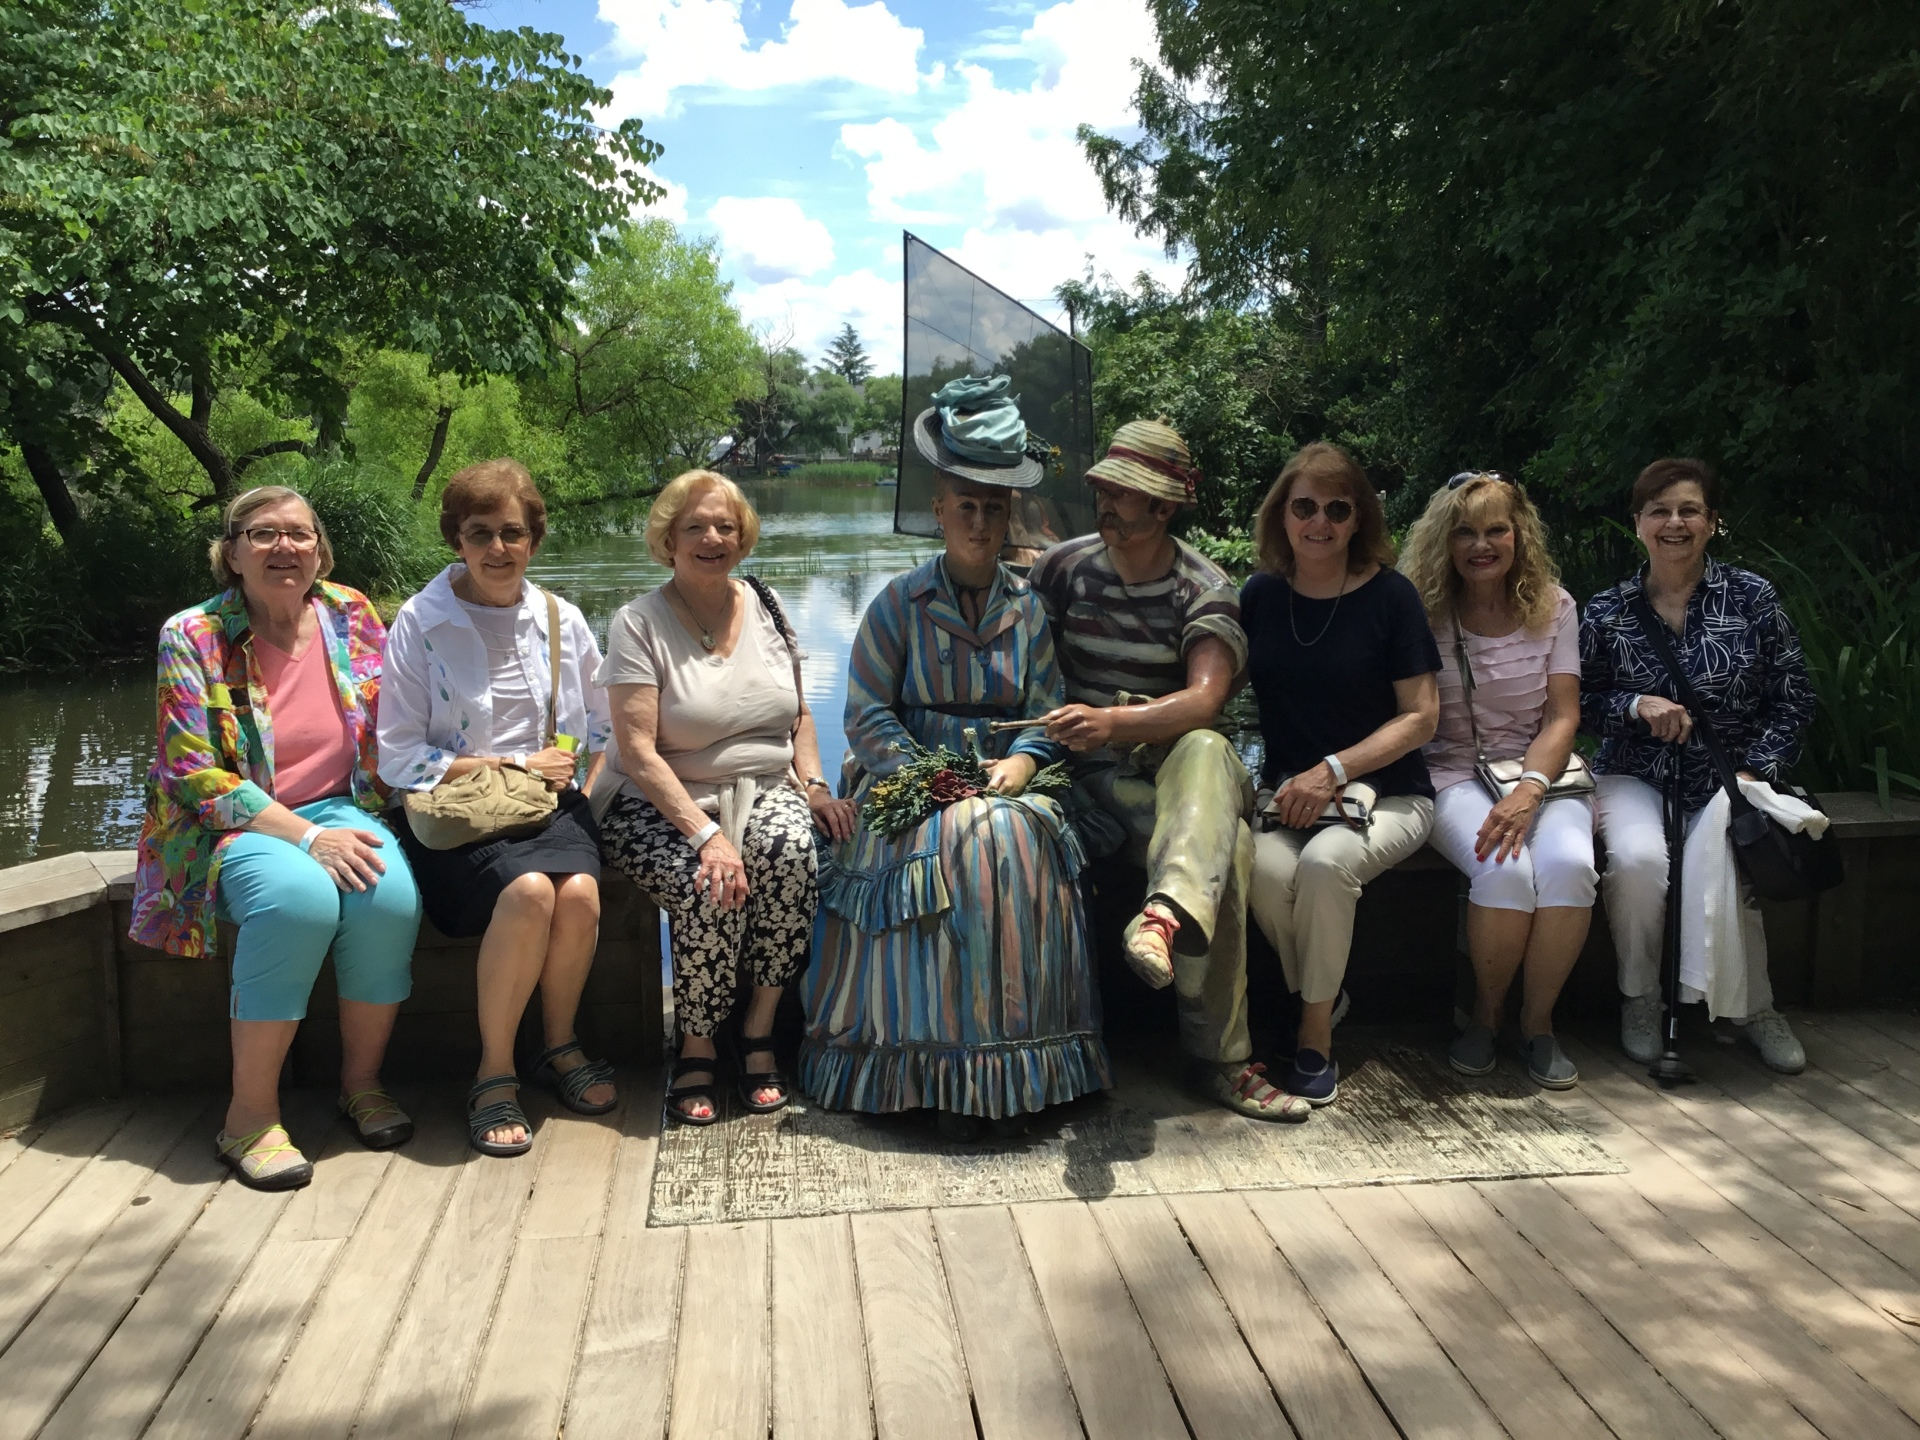 Out To Lunch Bunch and Garden groups dial back the times in NJ Sculpture Gardens - June 2018